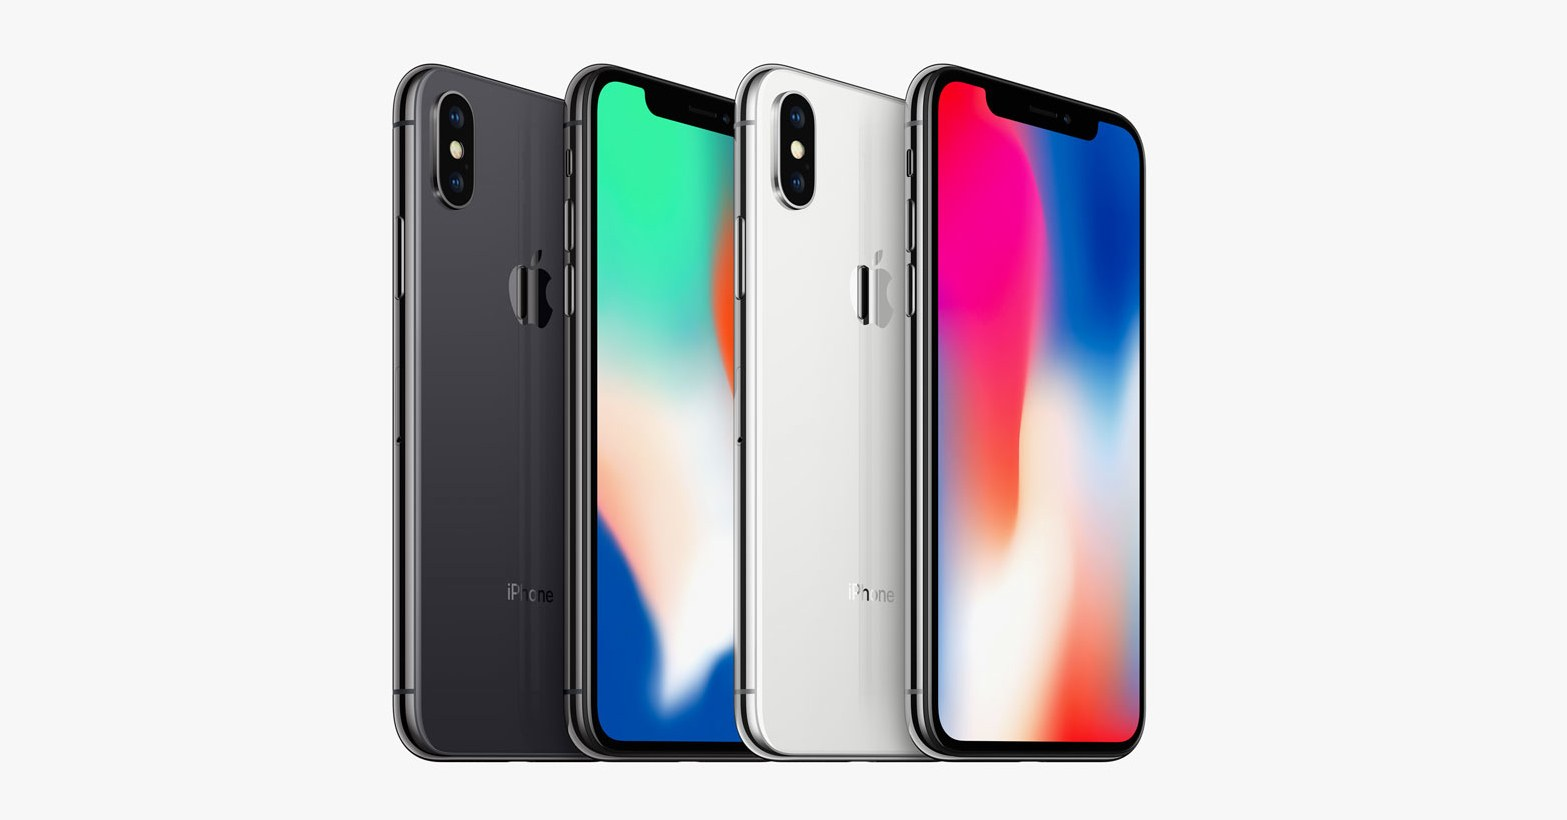 Torn Between the iPhone X vs iPhone 8? Psychologists Have a Name for That